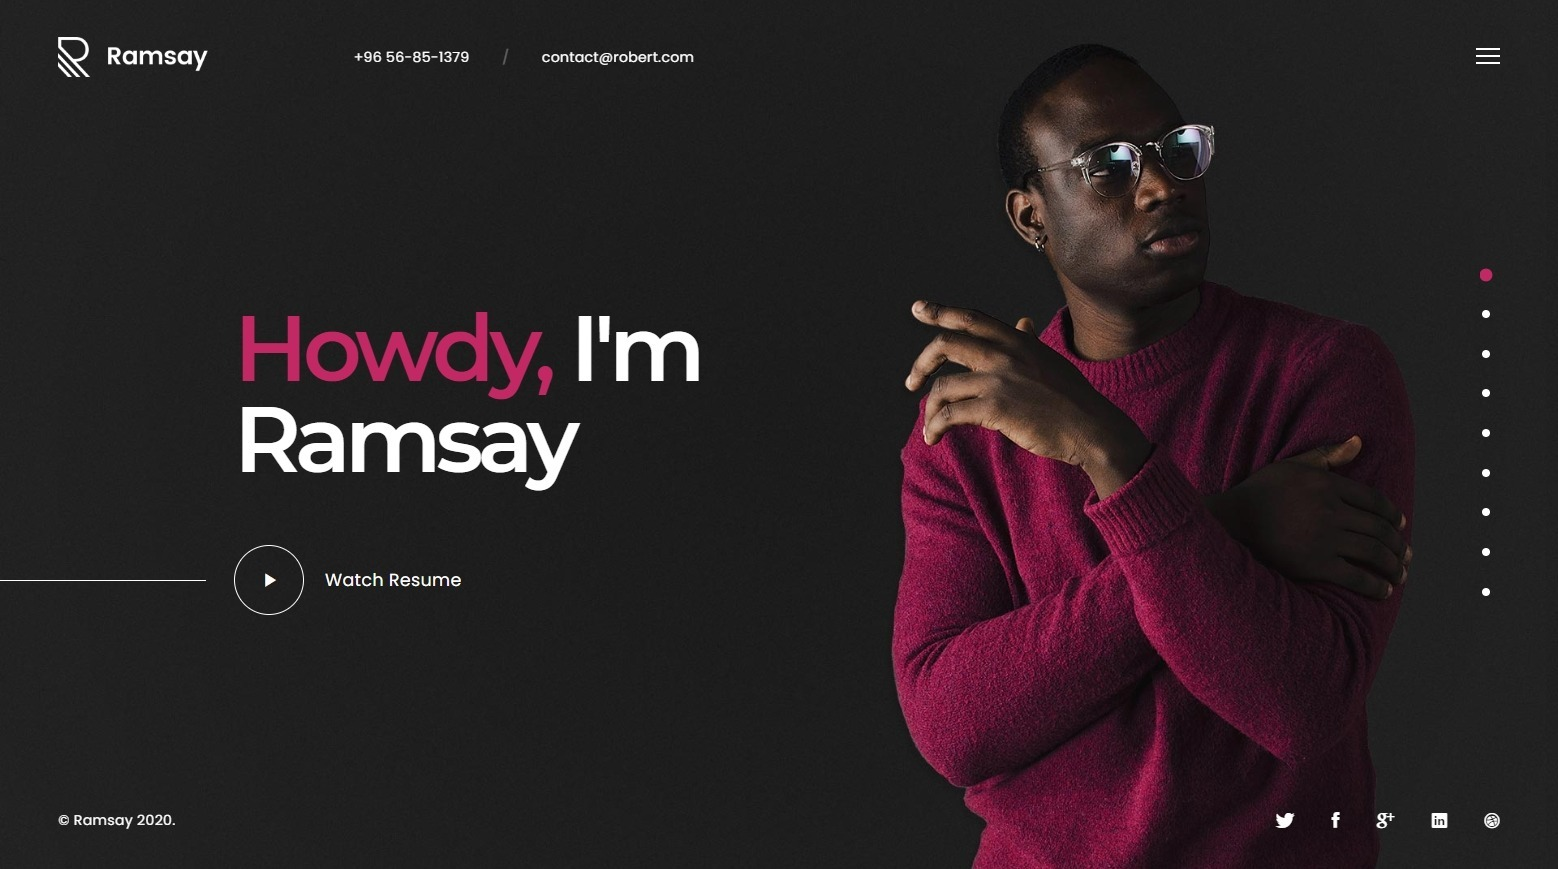 Ramsay Creative Personal Onepage WordPress Theme for vCards